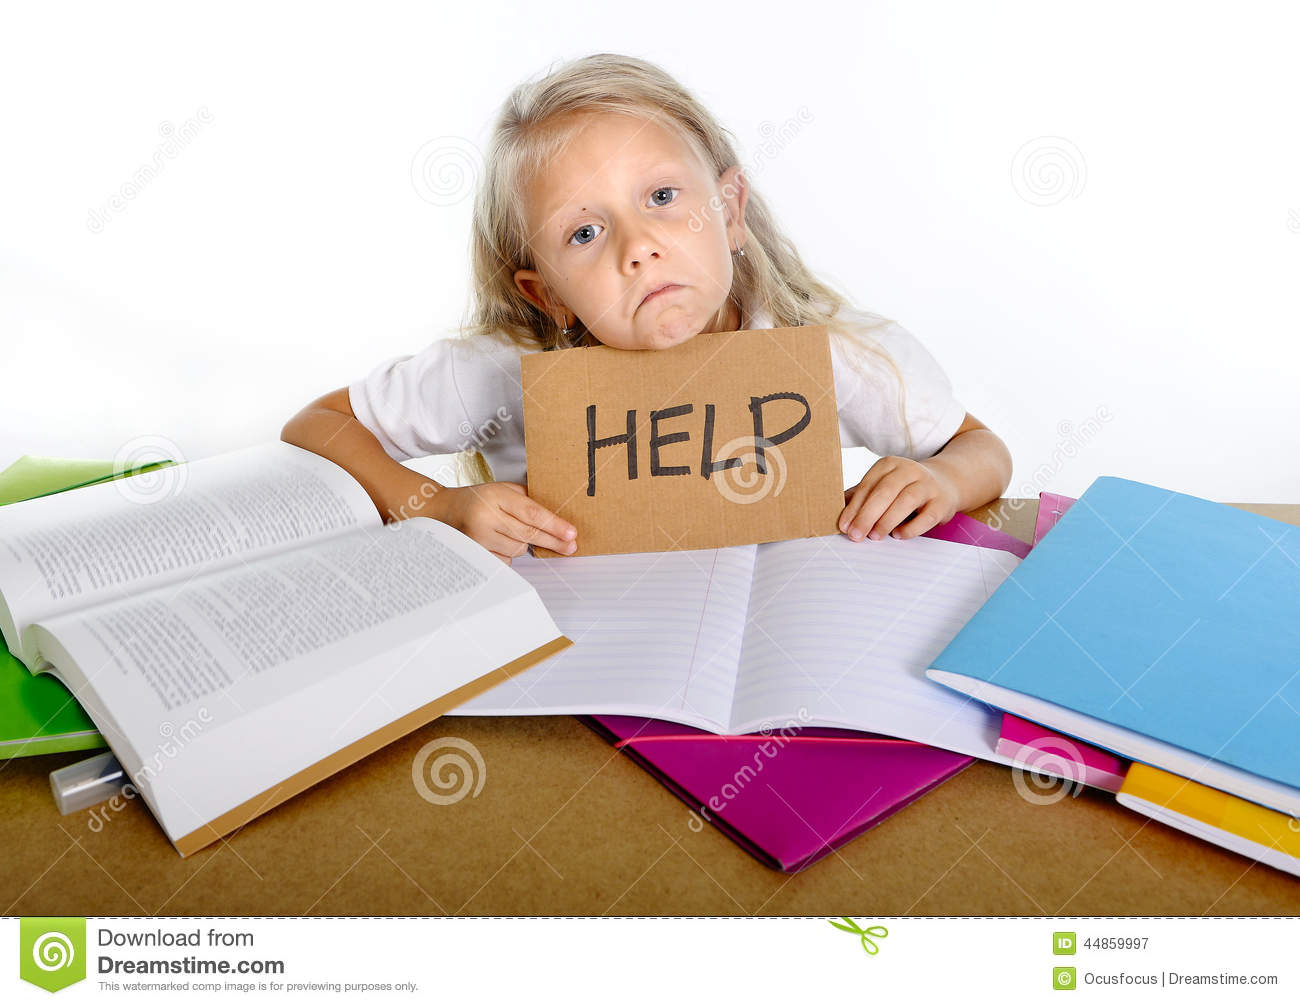 The most trustful and professional homework help in Canada